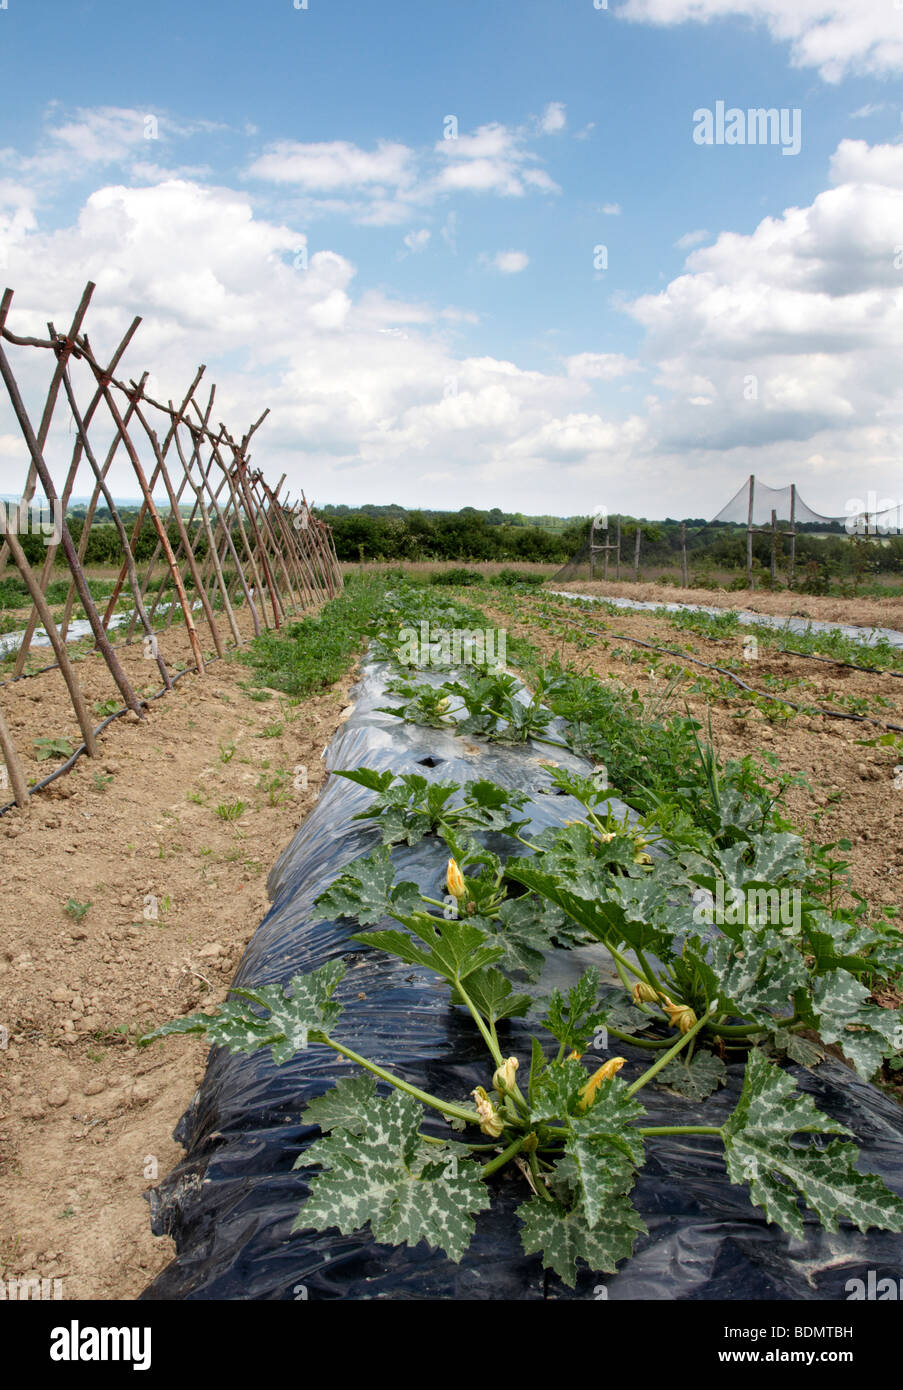 A vegetable garden in the Kent countryside - Stock Image